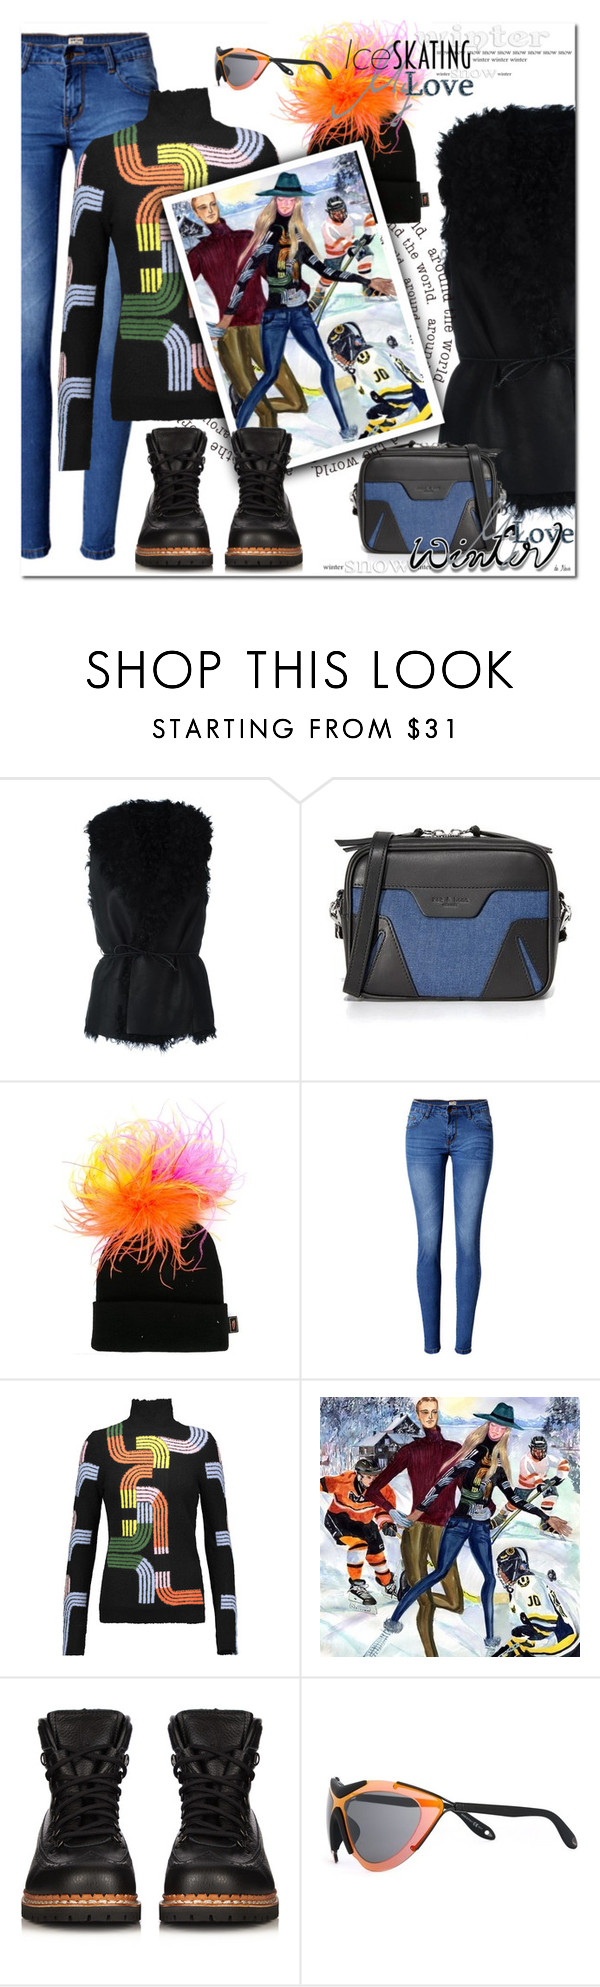 """SWEATER WEATHER"" by deneve ❤ liked on Polyvore featuring Salvatore Santoro, rag & bone, Piers Atkinson, WithChic, Peter Pilotto, Tabitha Simmons, Givenchy, winterfashion and wintersweater"